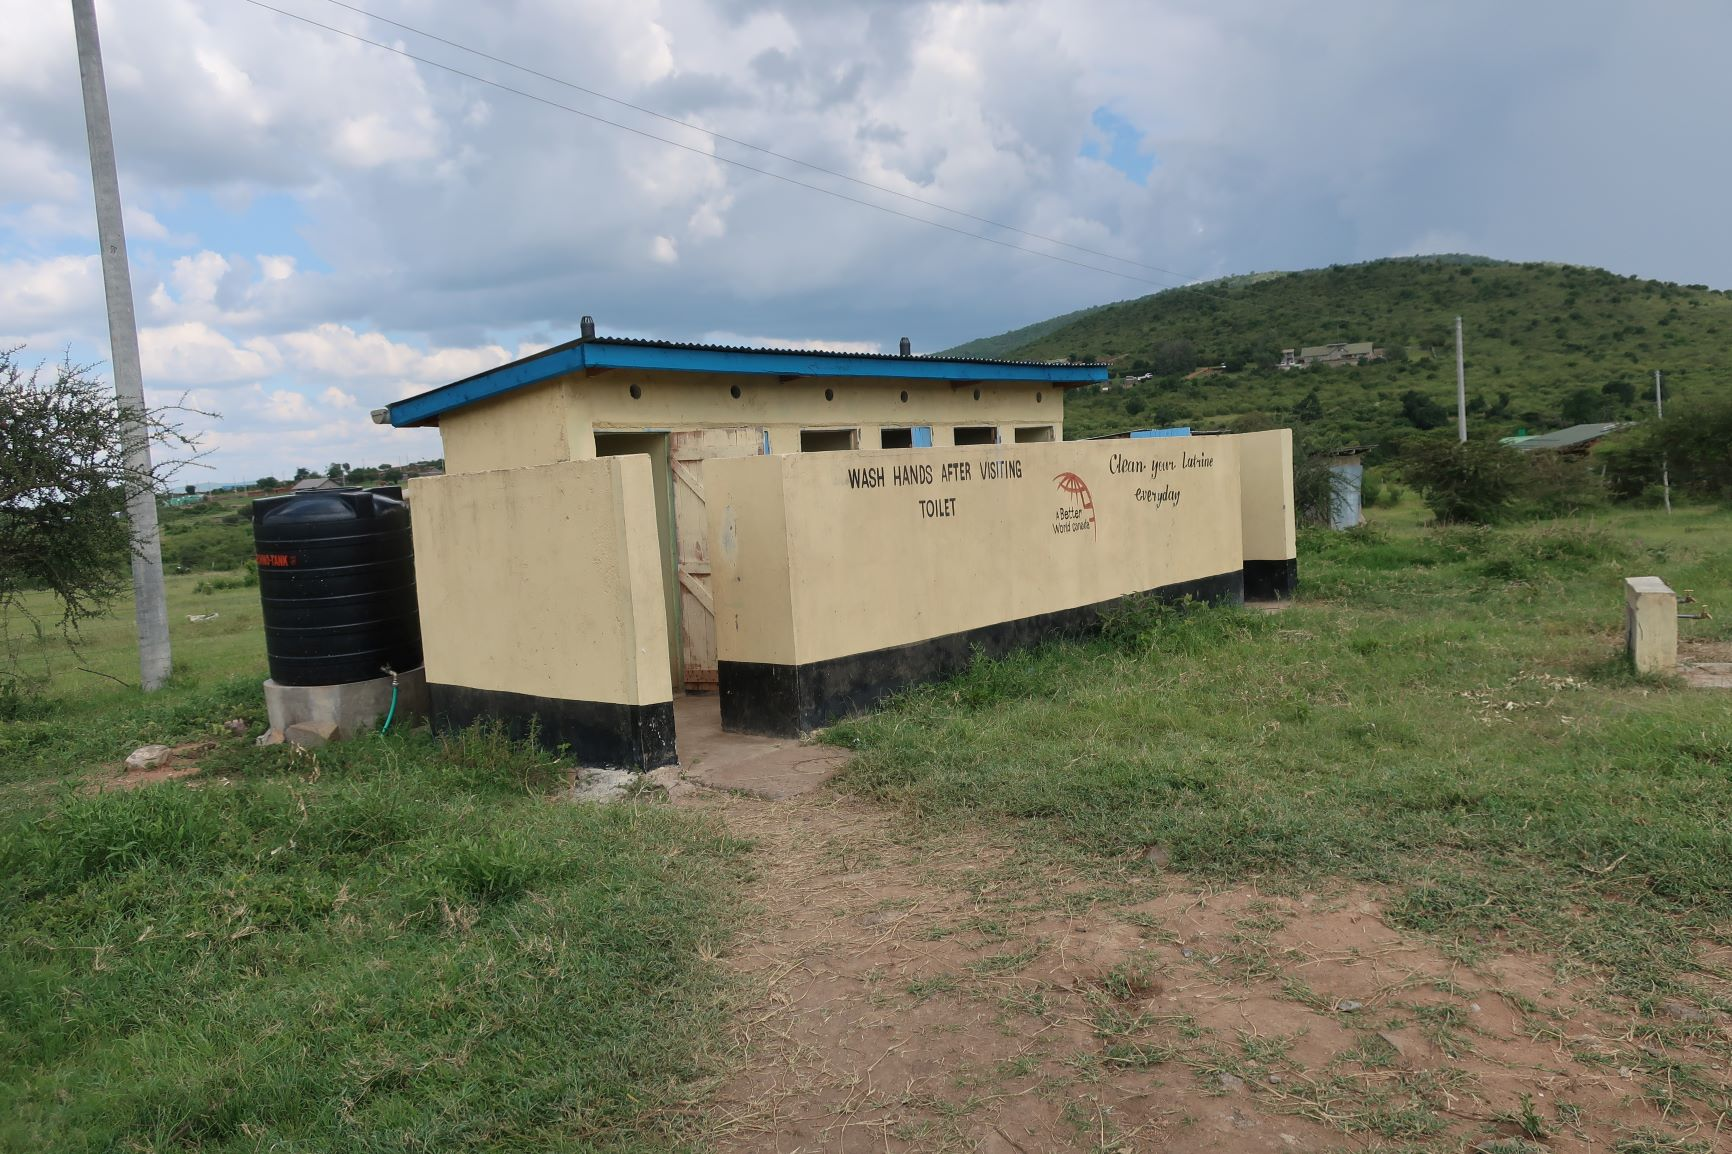 SEKENANI PRIMARY SCHOOL – 6 Boys, 6 Girls, and 6 Teachers Toilets